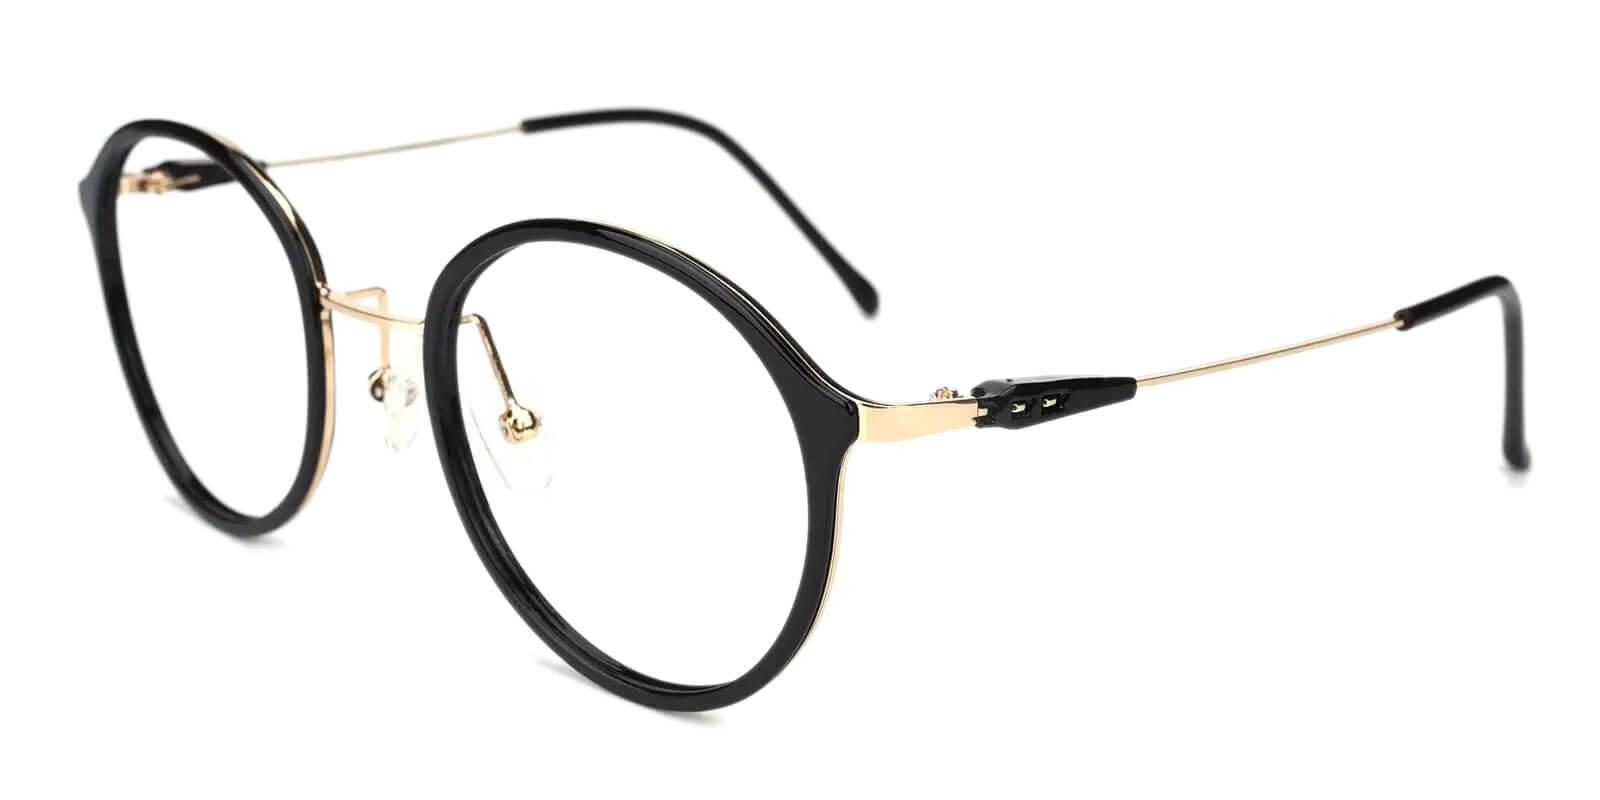 Macau Black Metal , TR Eyeglasses , Lightweight , NosePads Frames from ABBE Glasses